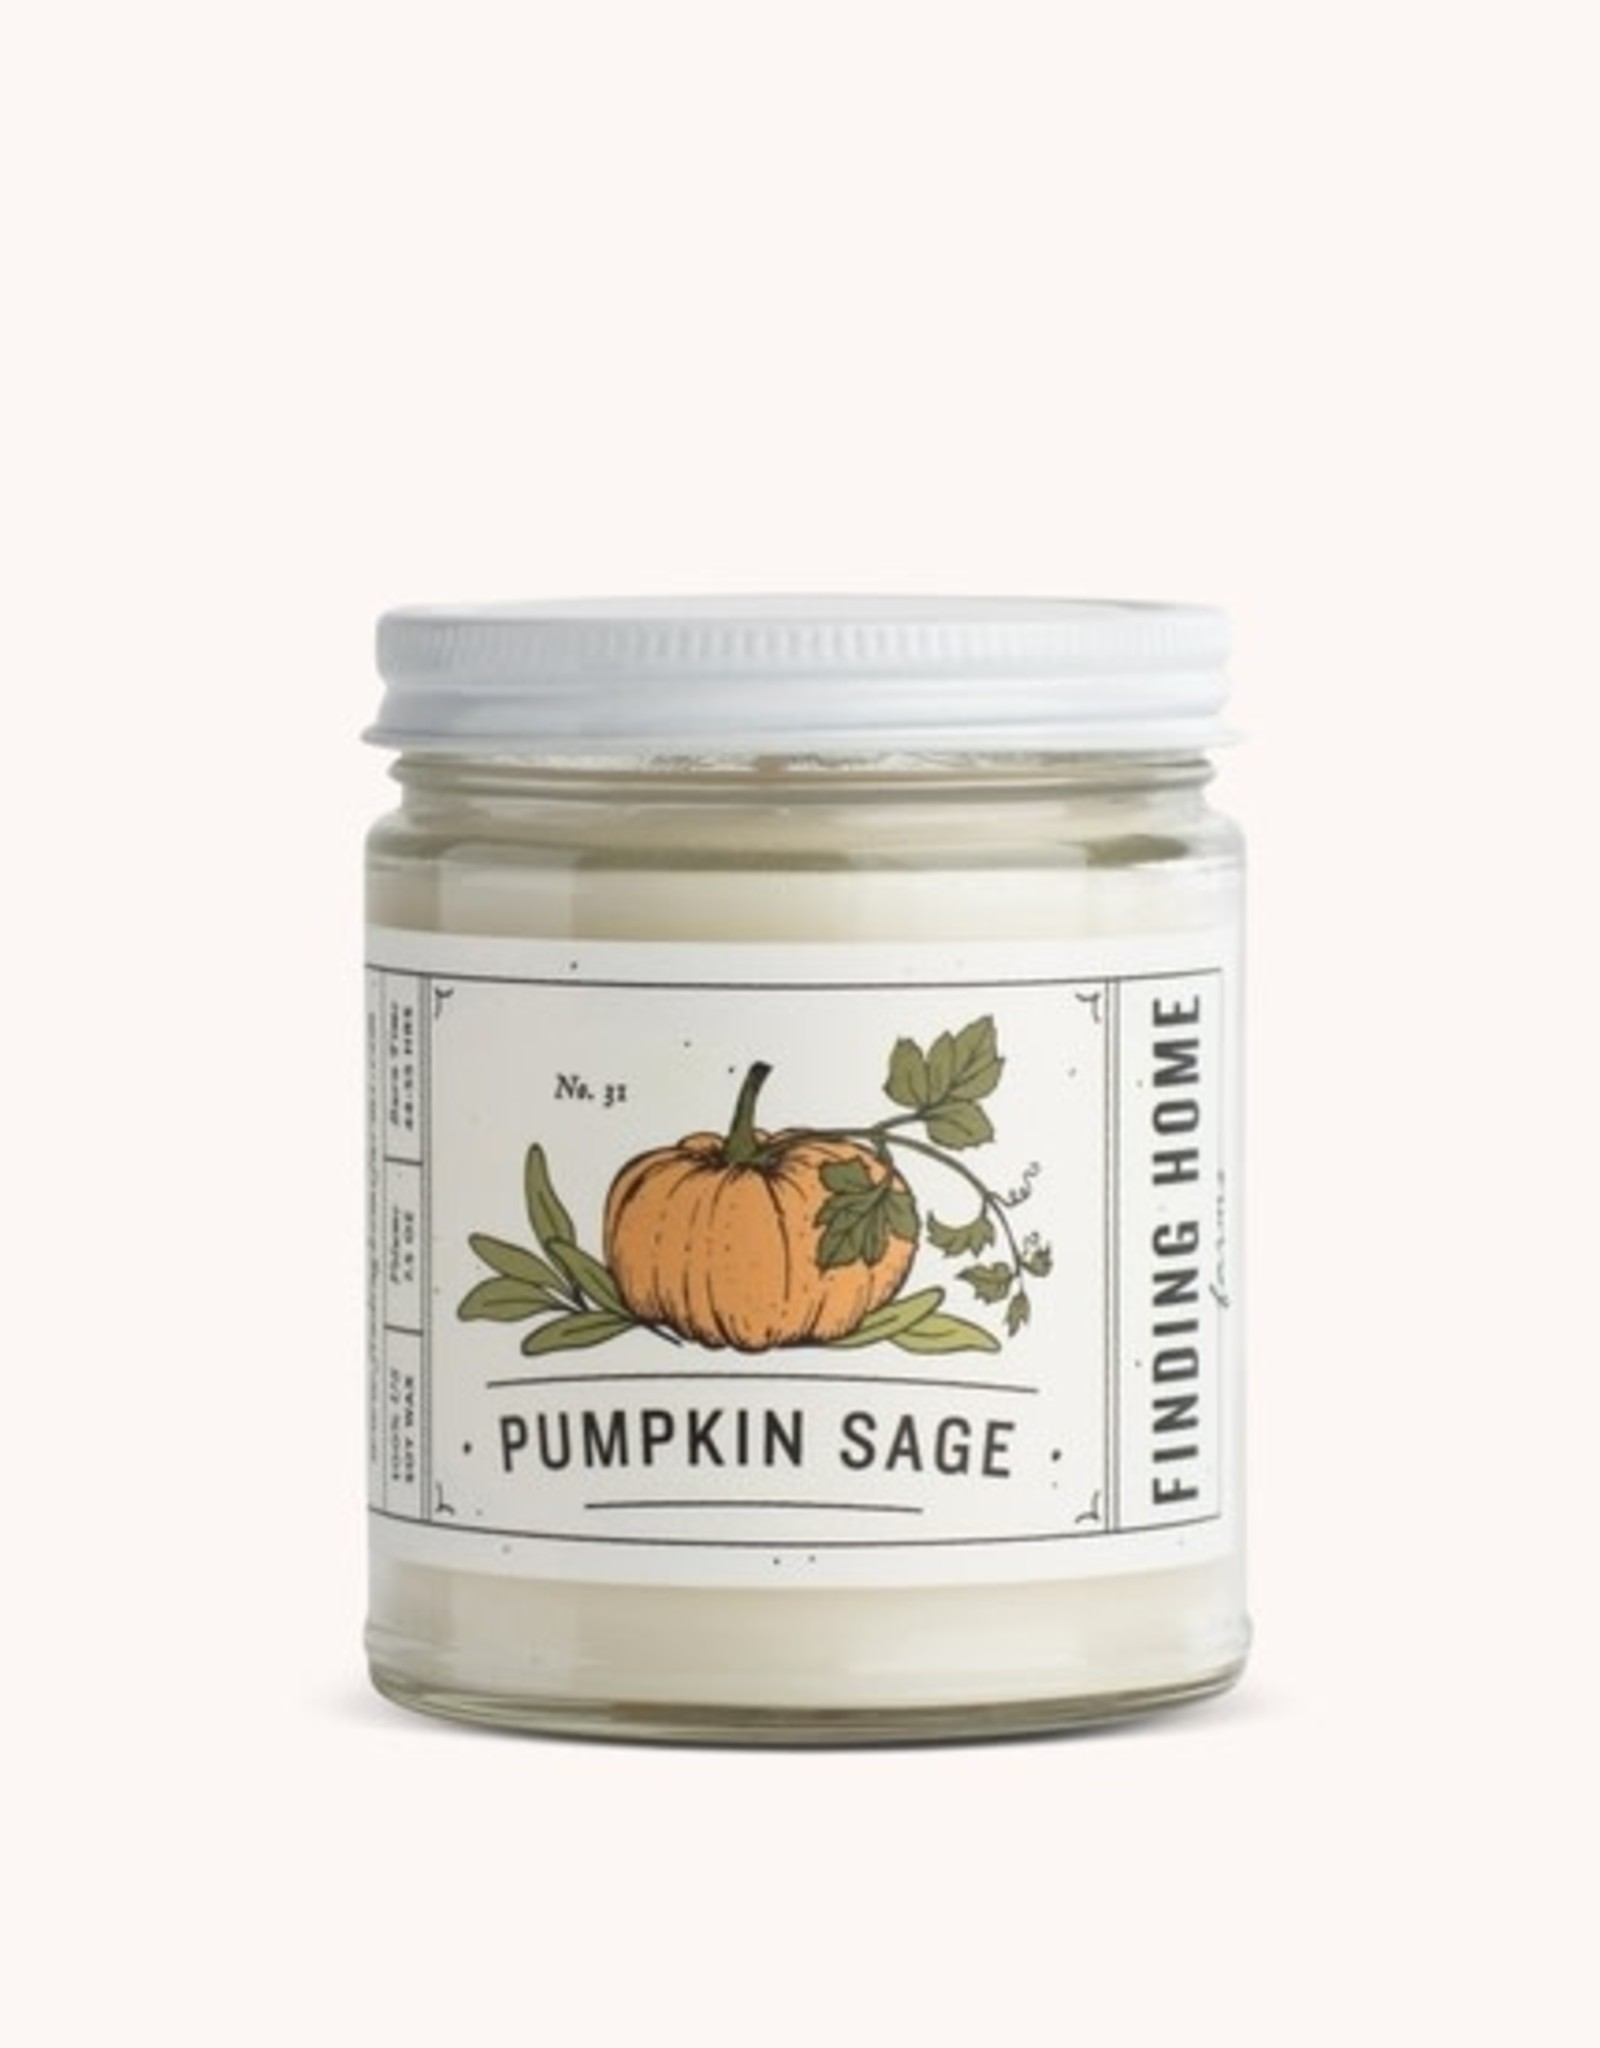 Finding Home Farms Pumpkin Sage Candle